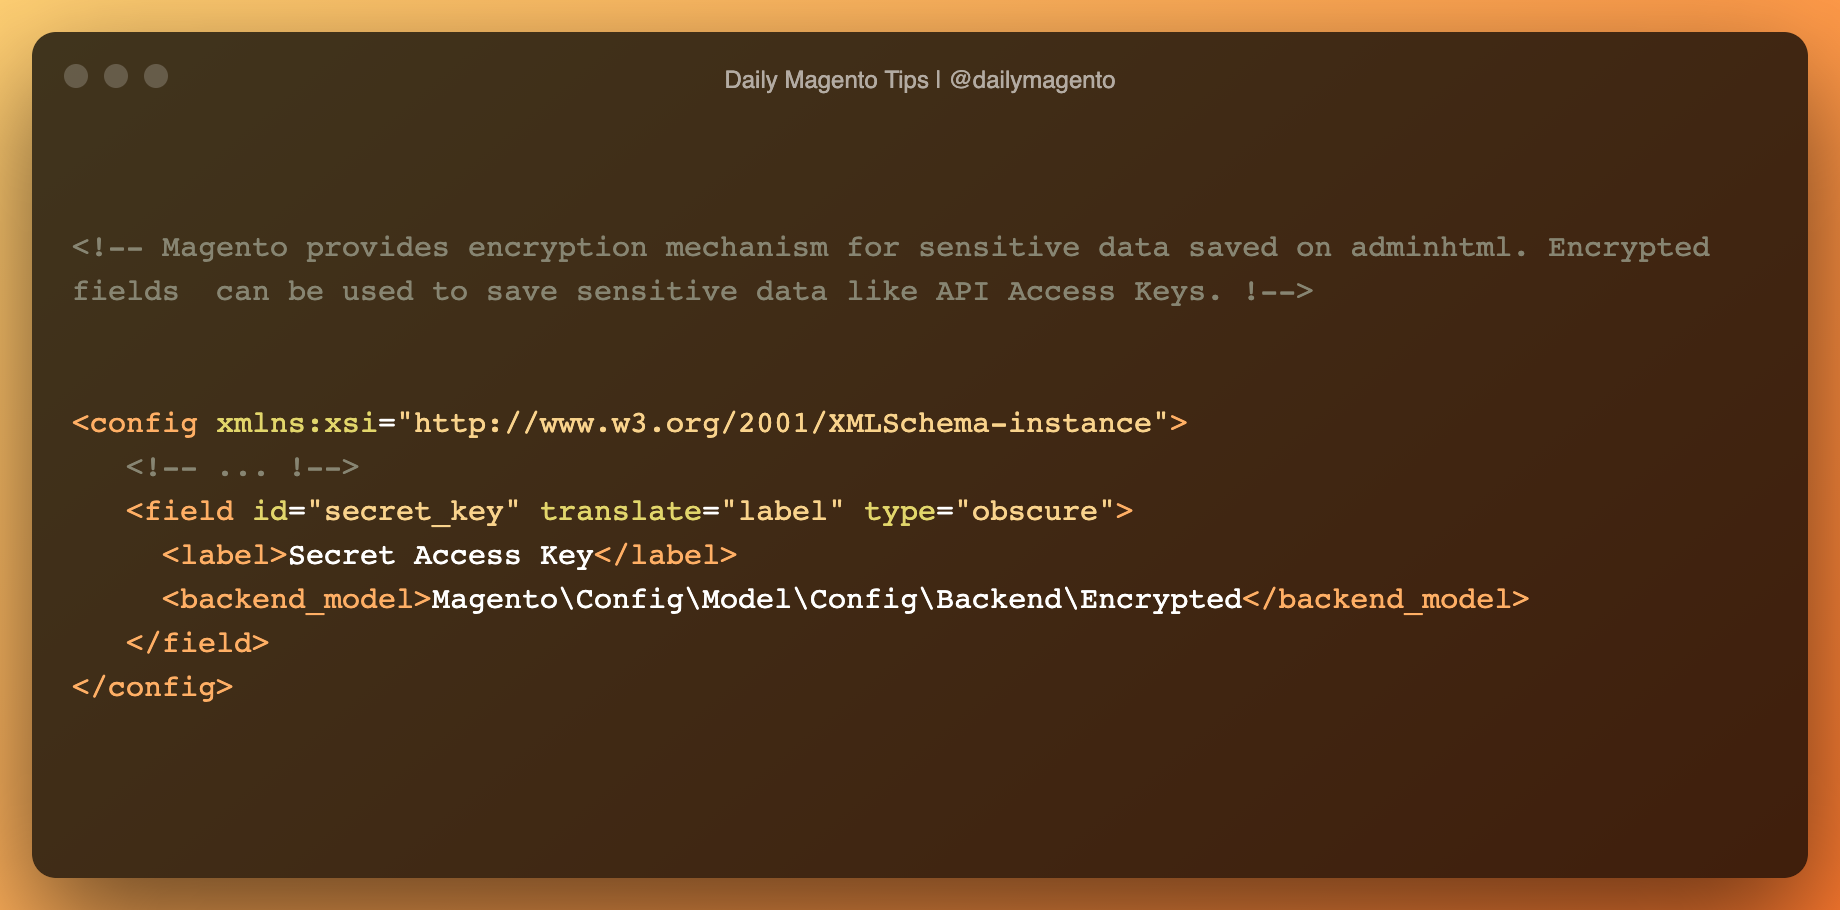 magento-encrypt-obscure